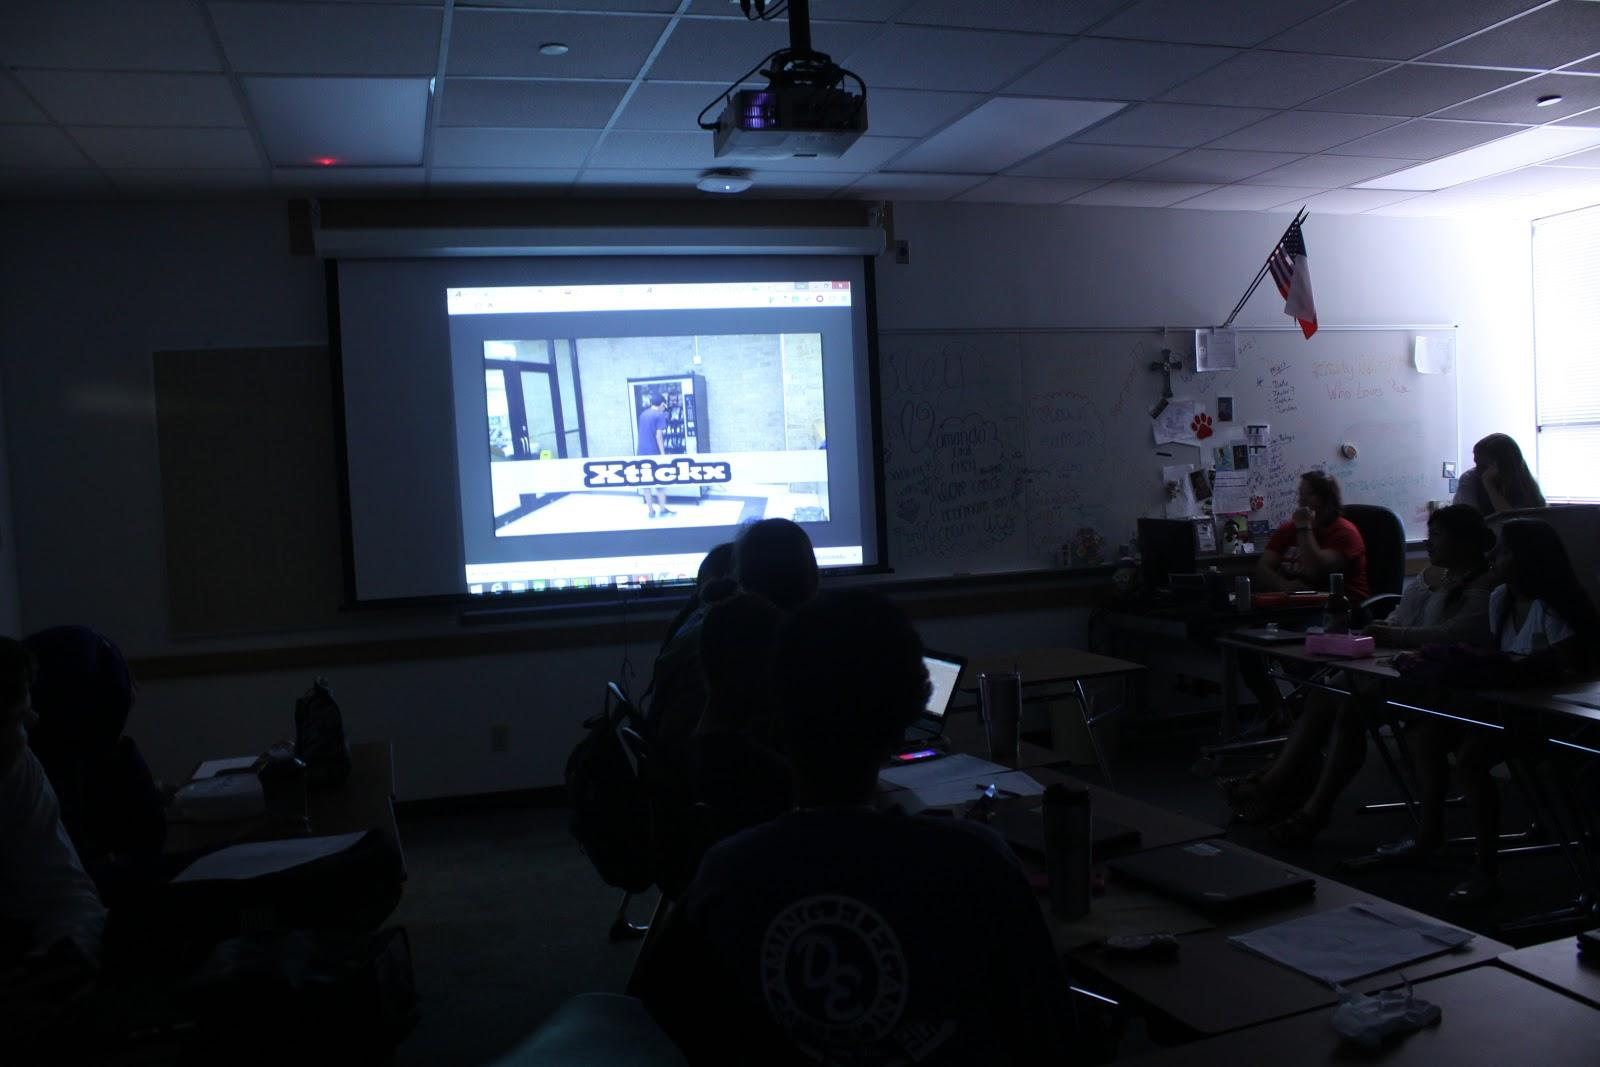 Many teachers incorporate videos and movies into their lesson plans. Professional Communications teacher Gigi Heermans has had her students film commercials recently to learn about persuasive speeches